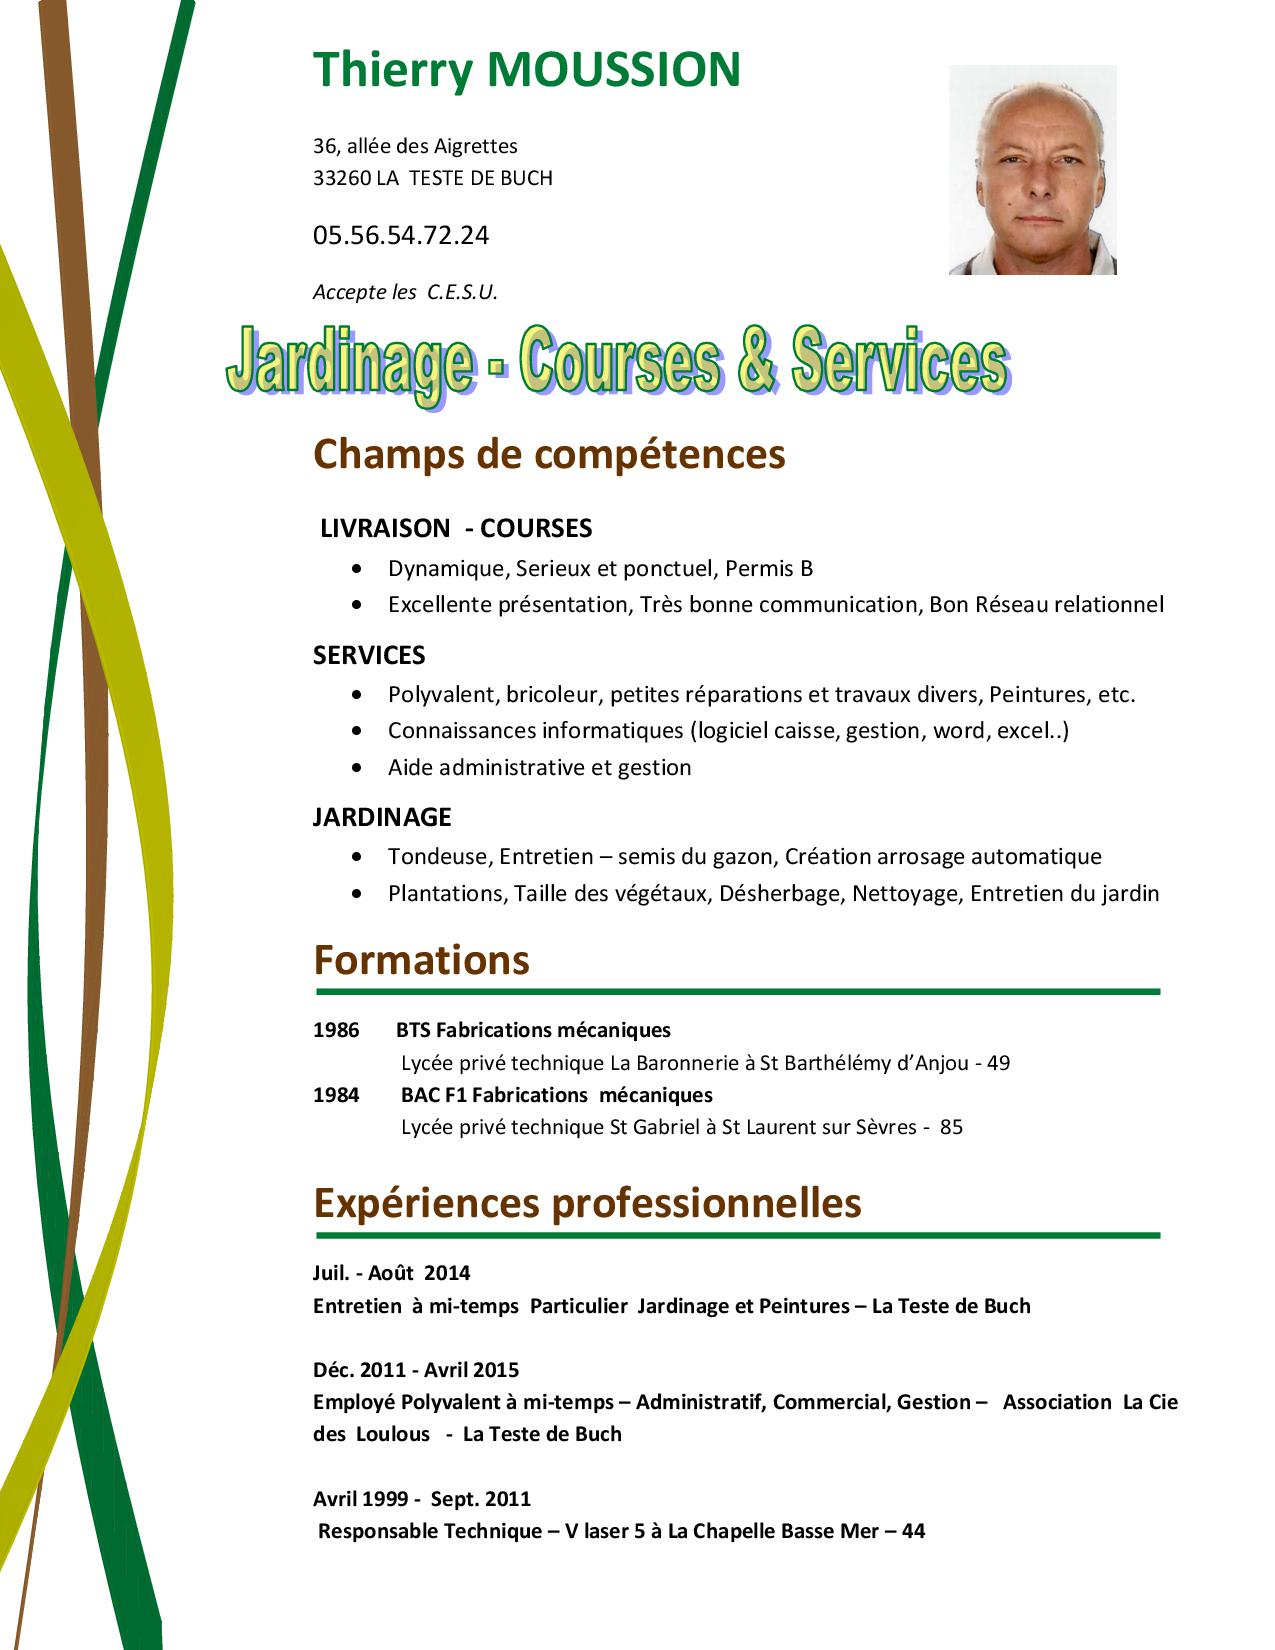 Moussion thierry jardinage for Jardinage a domicile tarif